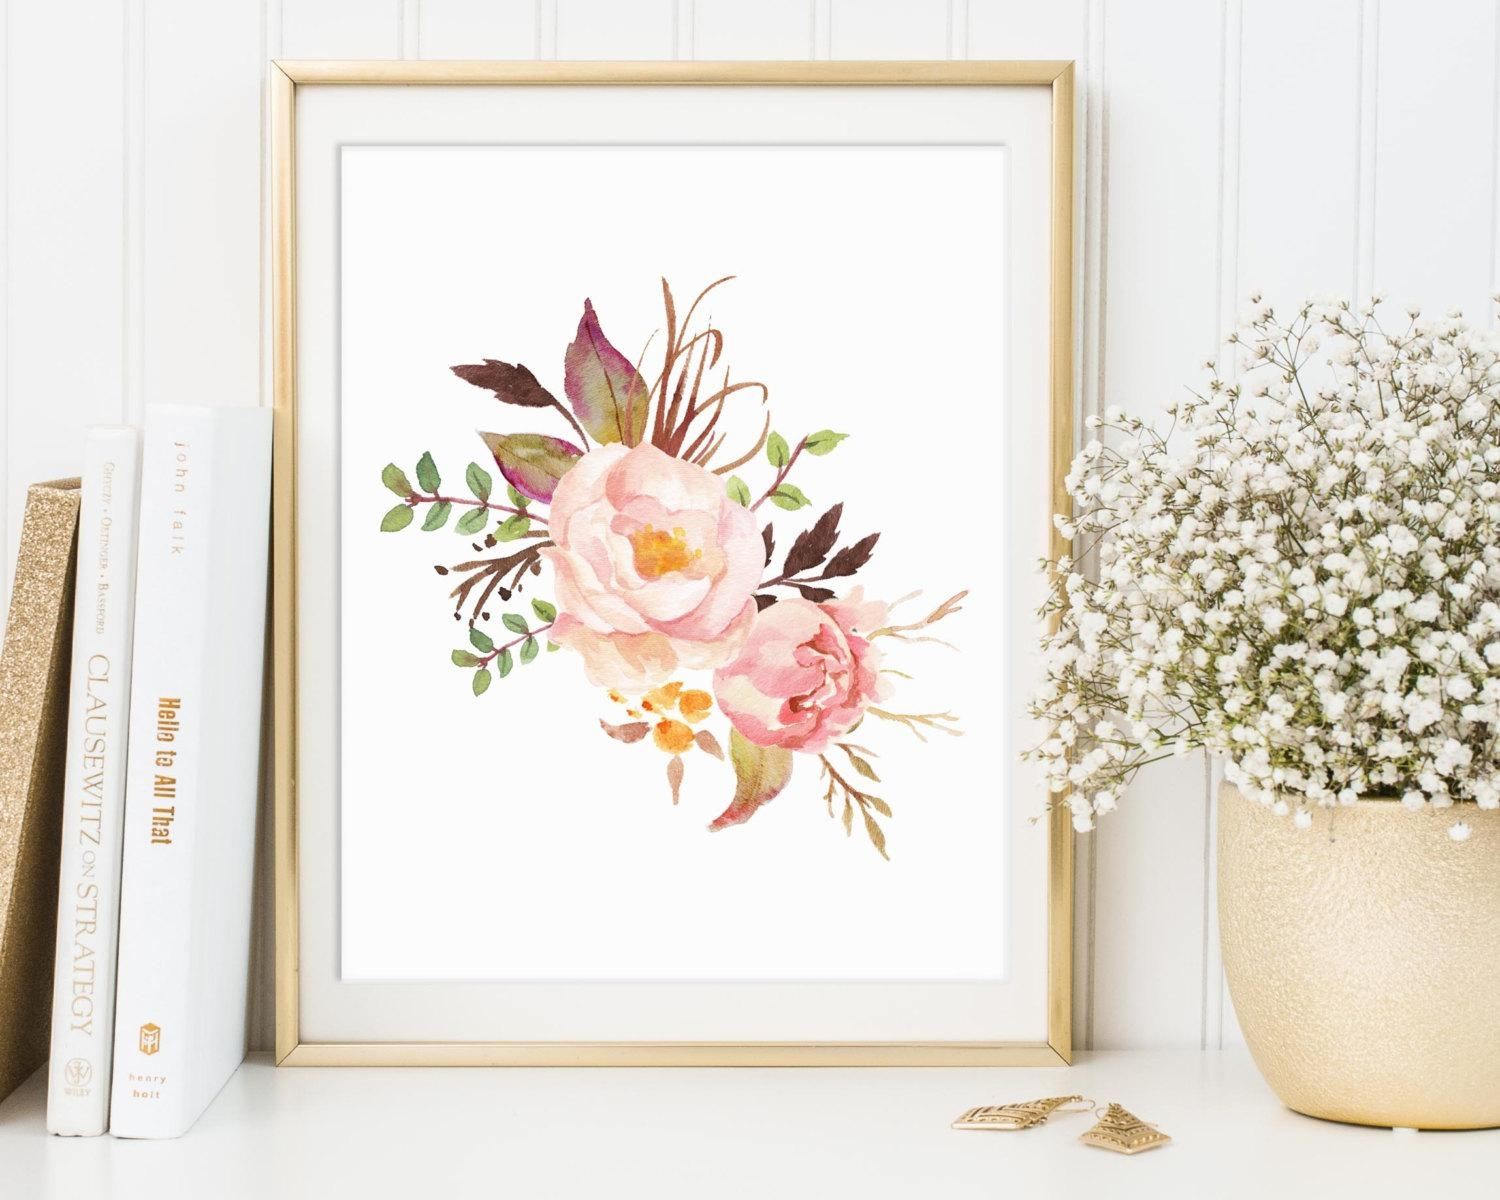 Floral Print Floral Decor Floral Wall Art Floral Printable Intended For Floral & Plant Wall Art (View 6 of 20)